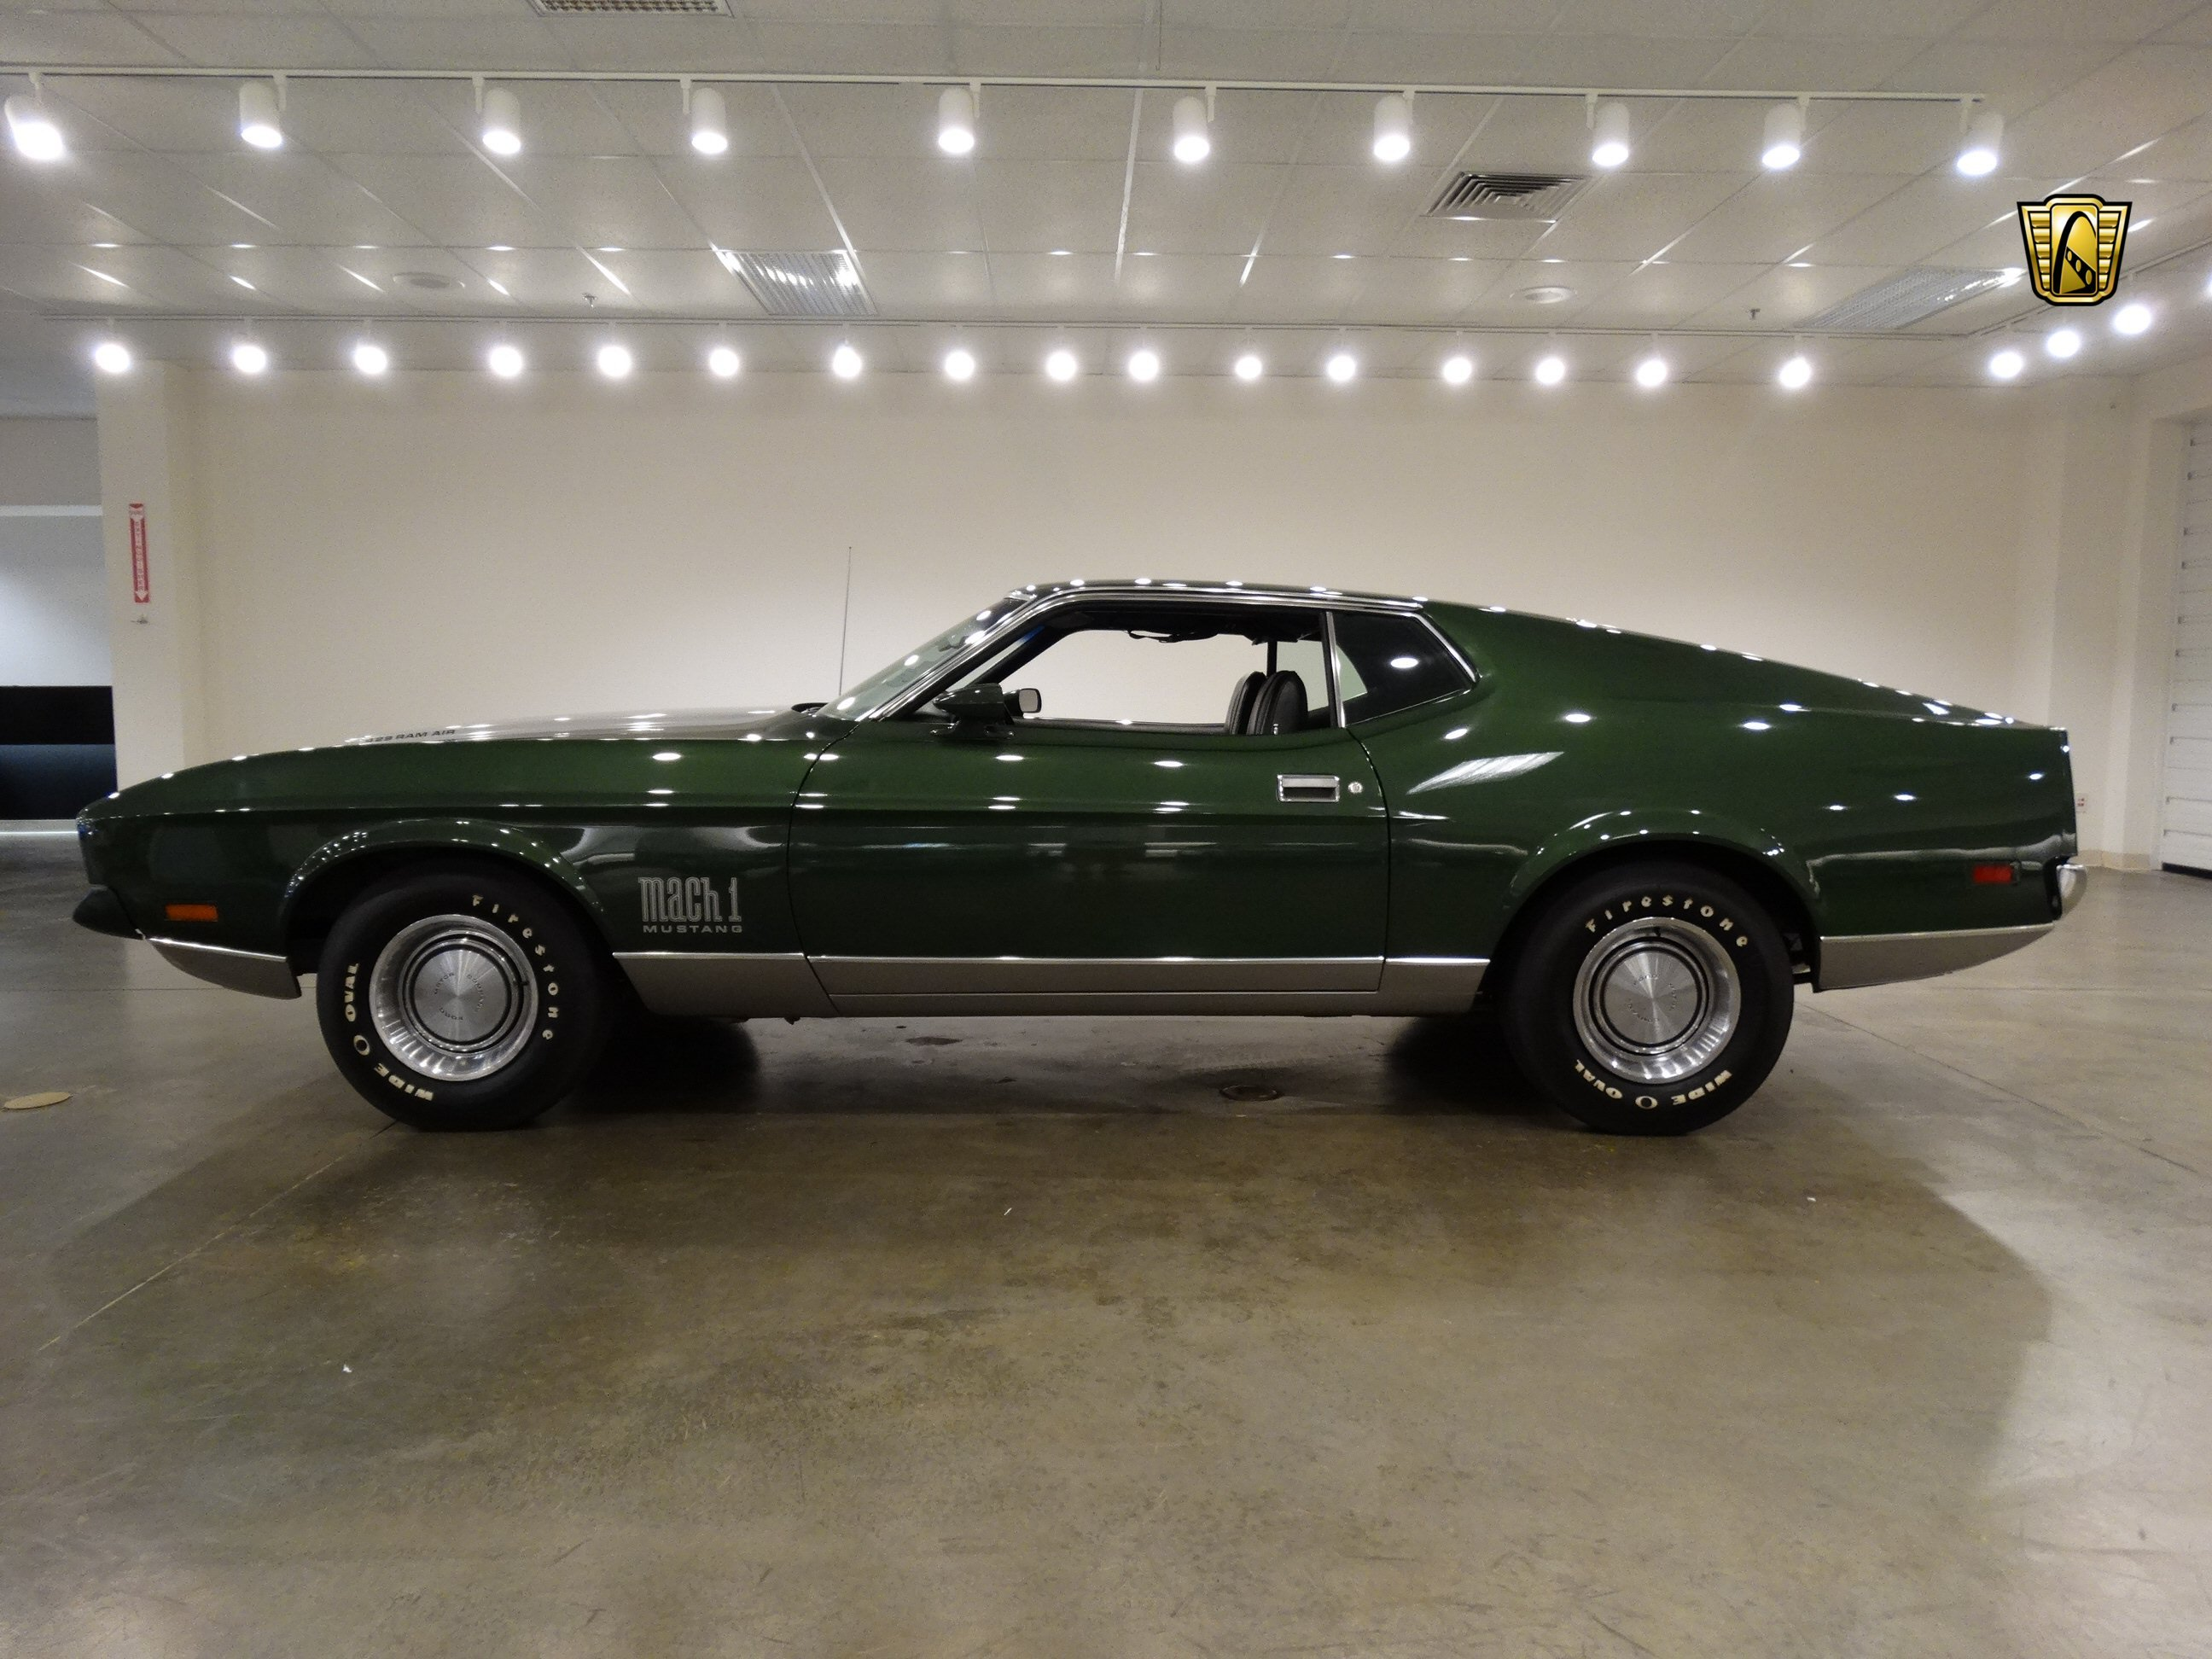 1971 ford mustang mach 1 cars green coupe usa wallpaper 2592x1944 817752 wallpaperup